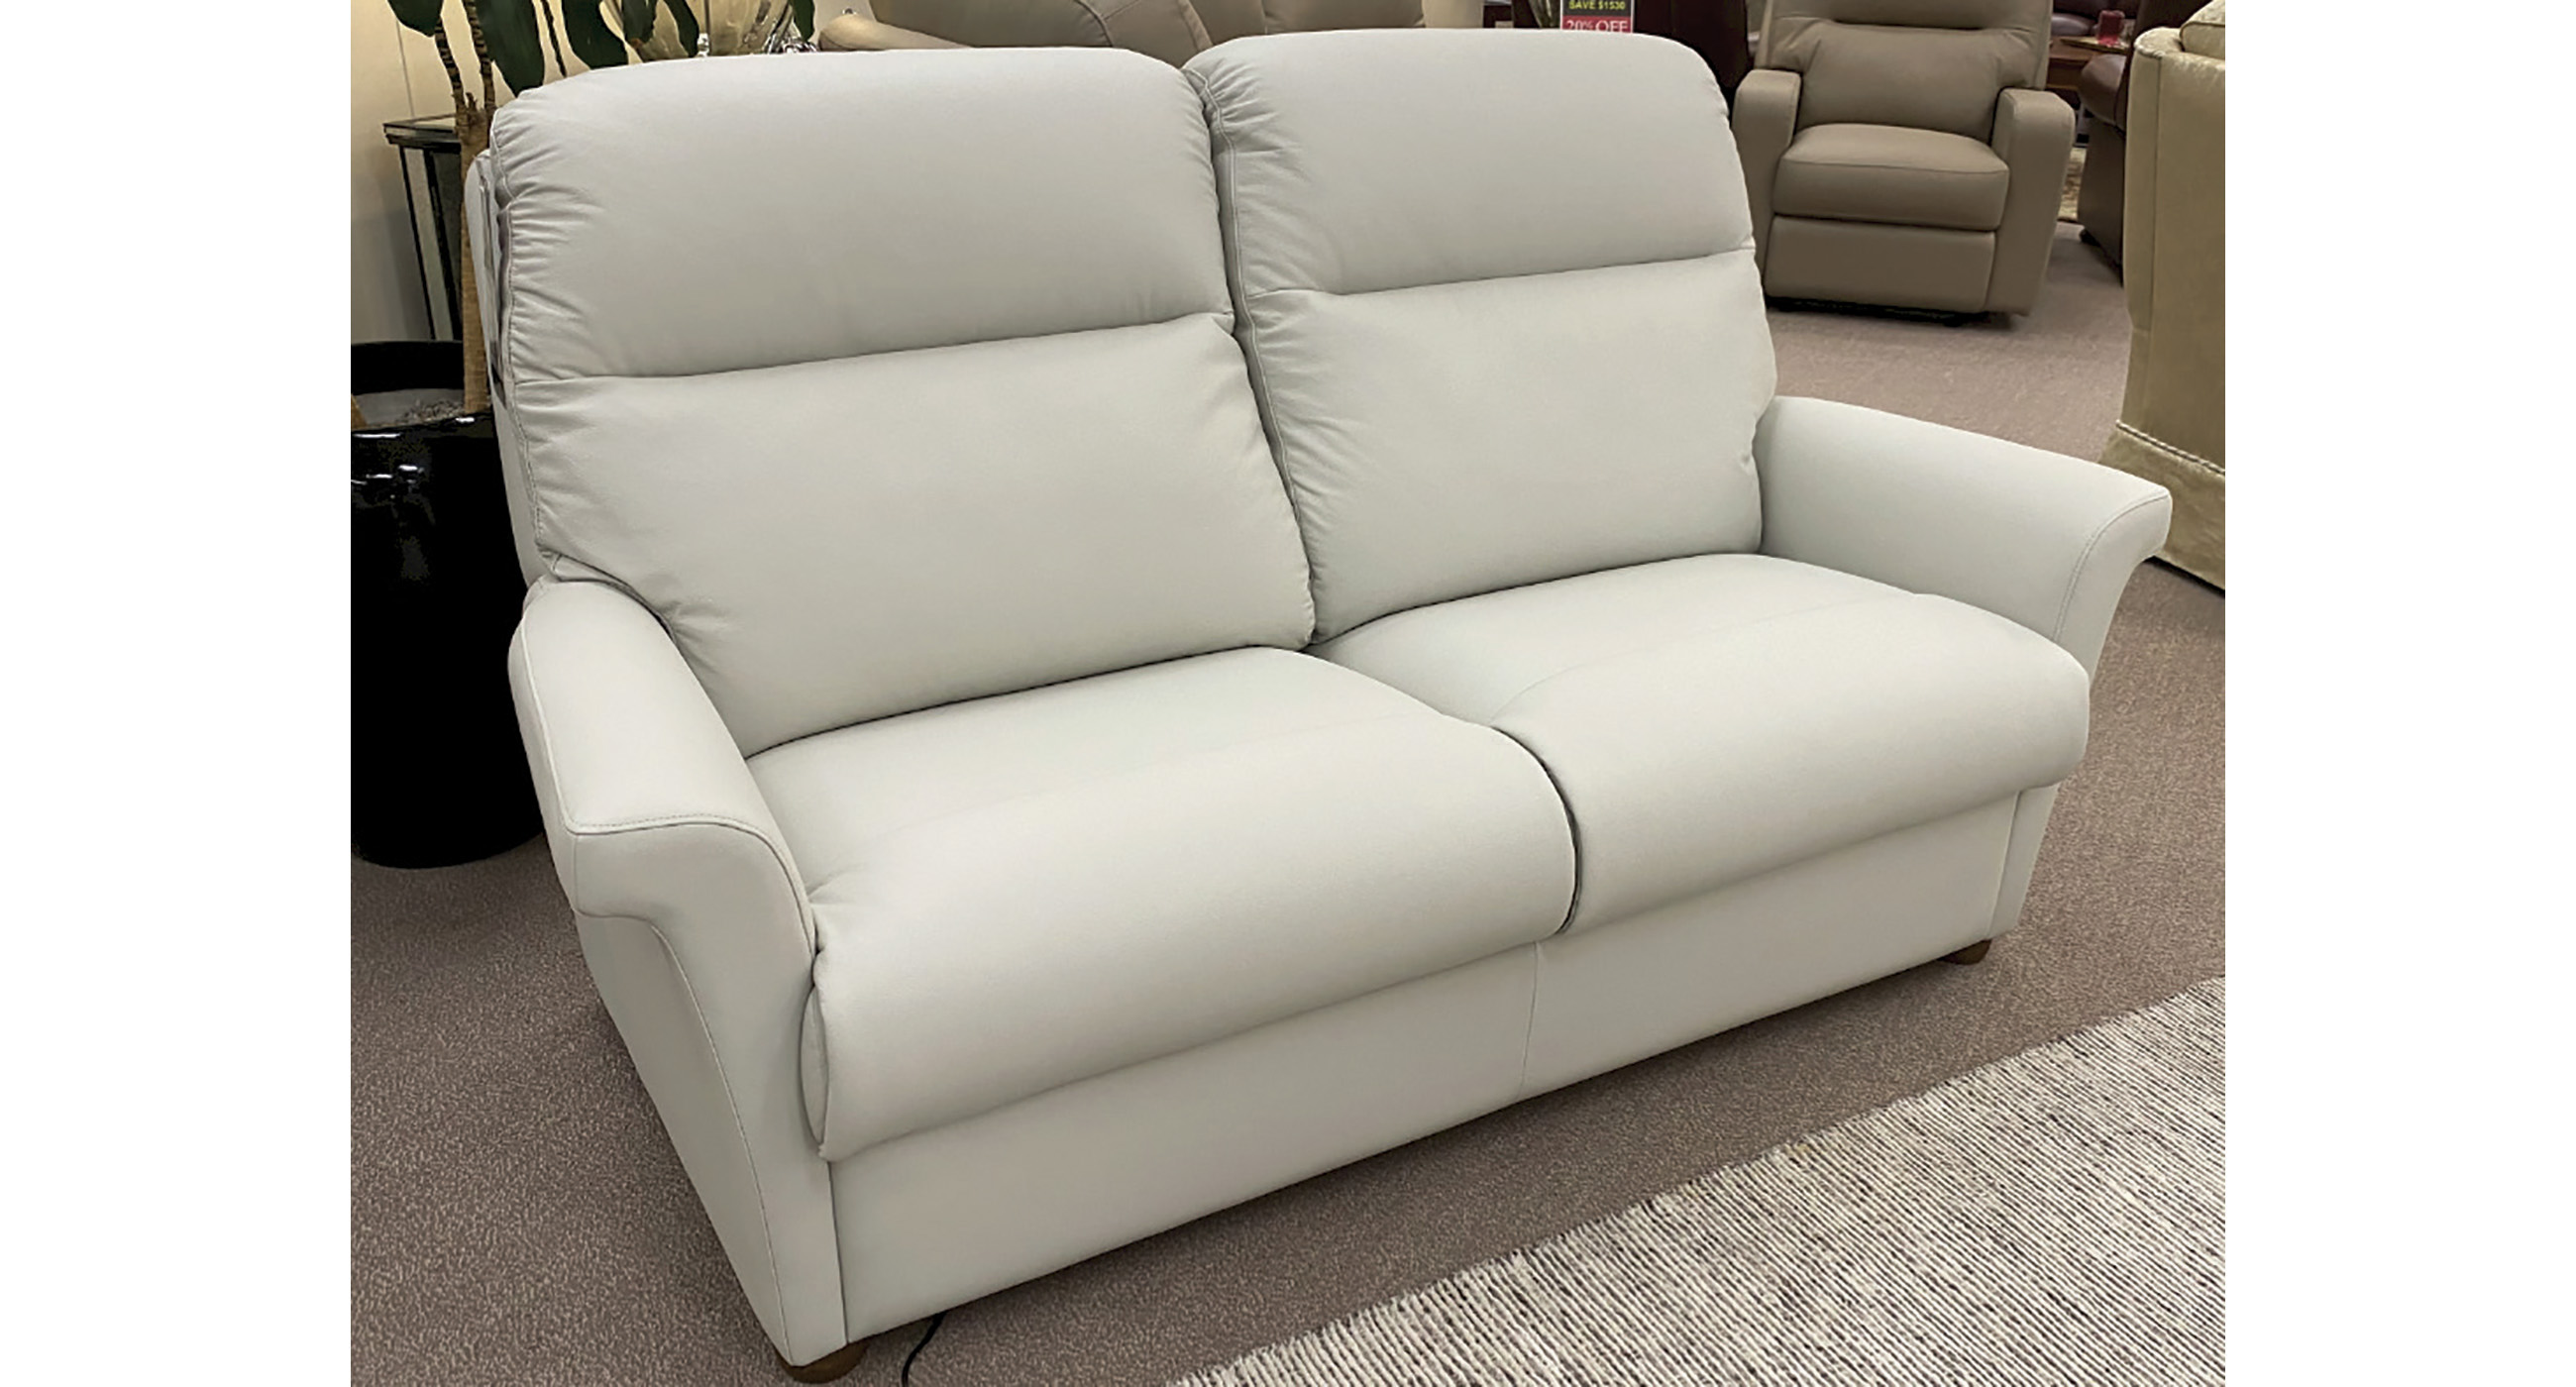 Hadley Reclining Sofa and Chairs